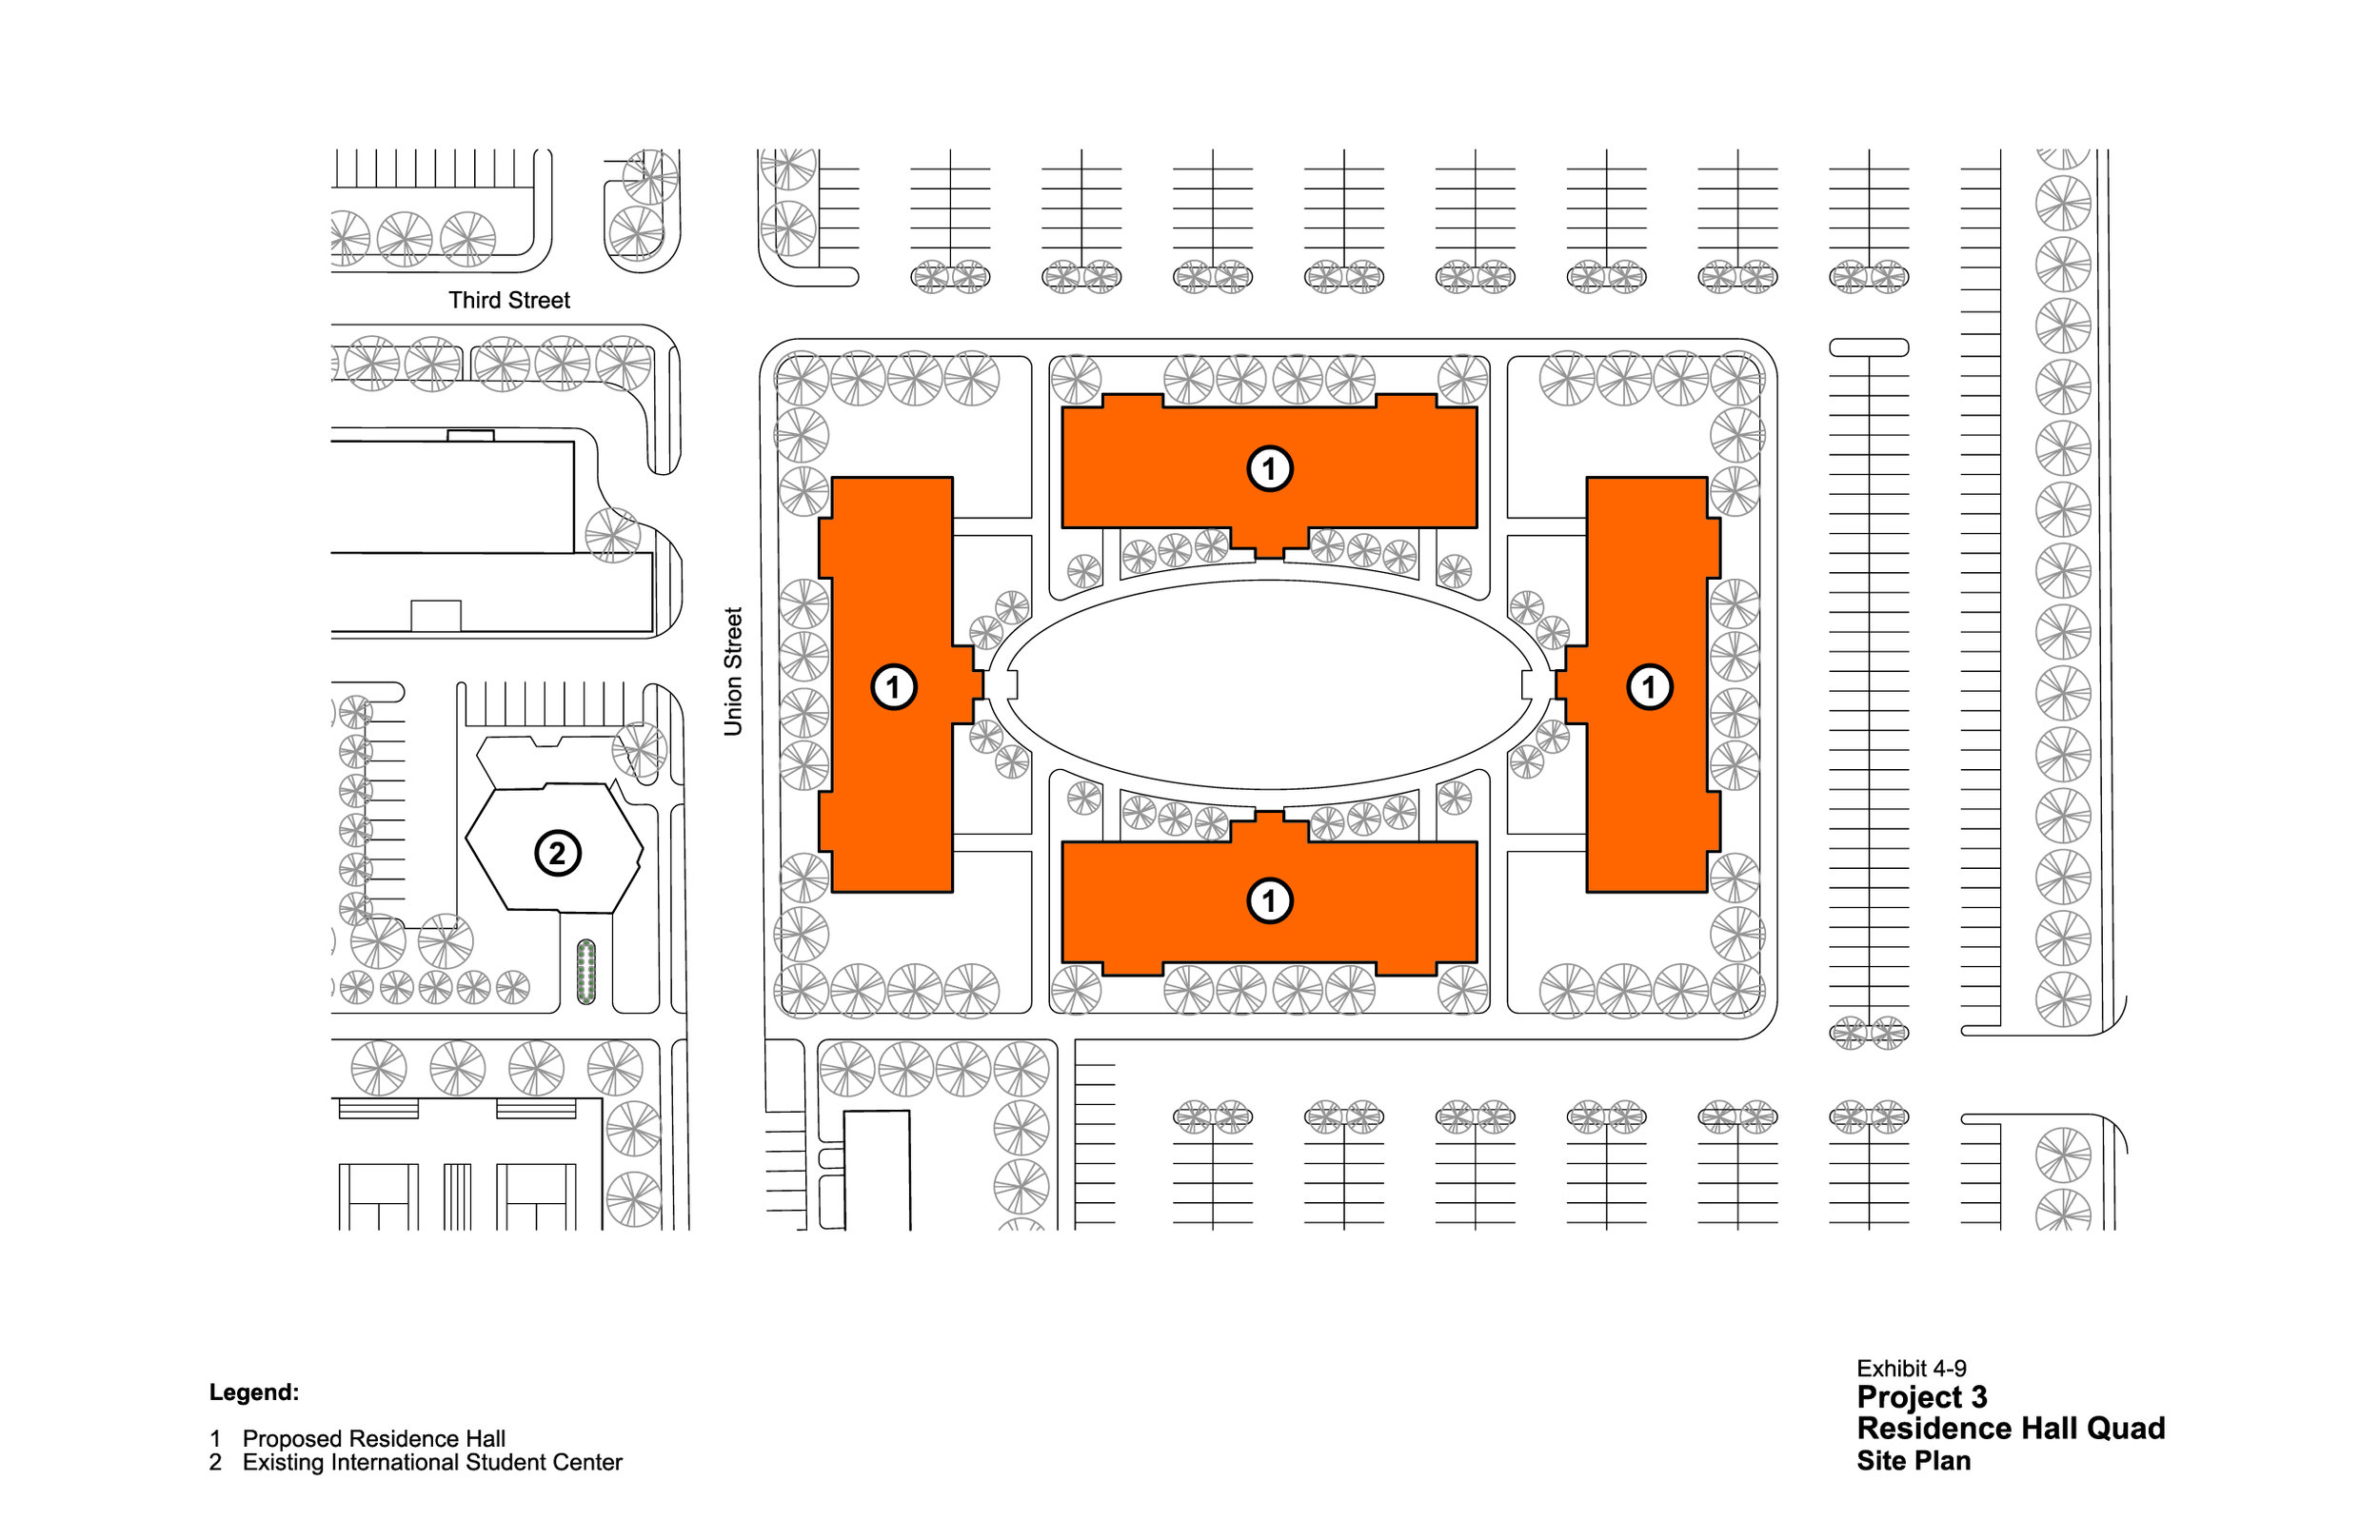 Exhibit4-9_Project 3 Site Plan.jpg